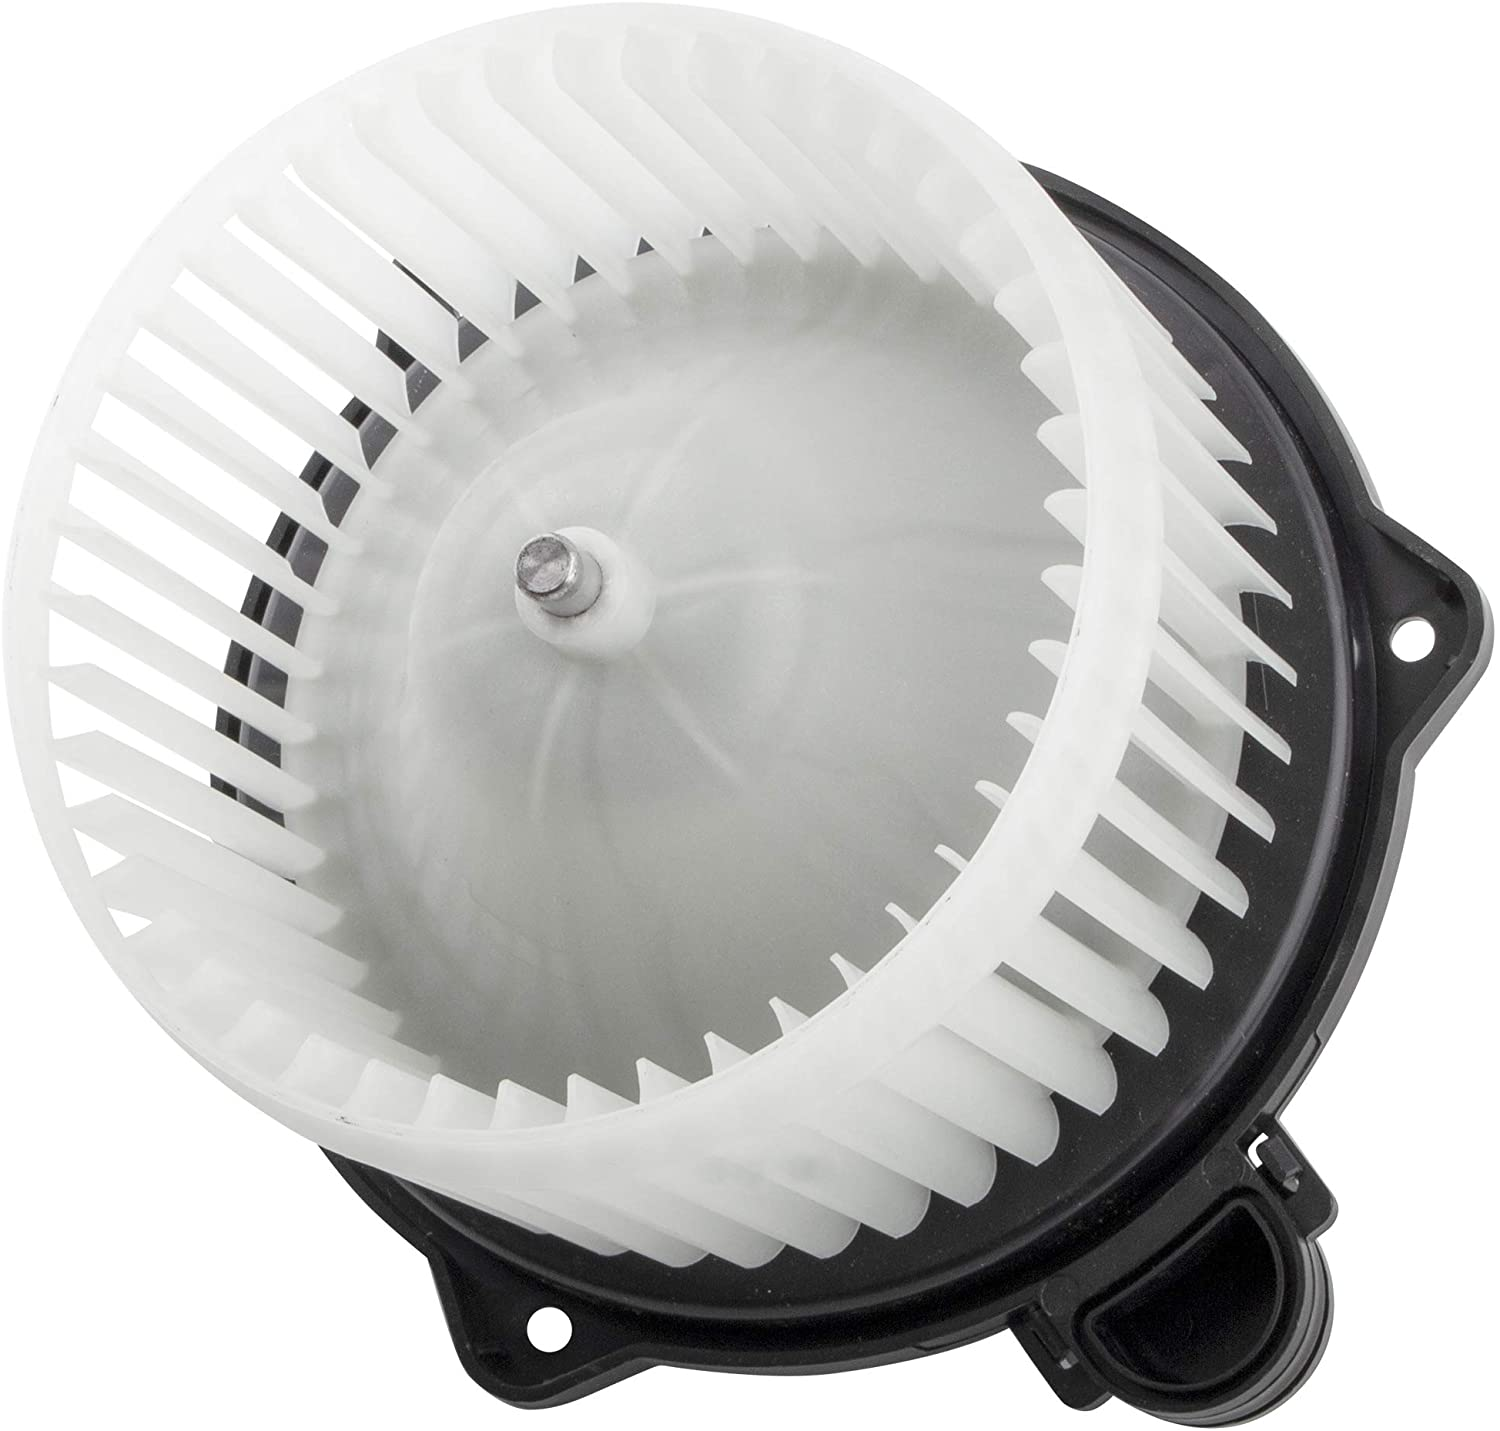 BOXI HVAC Blower Motor Fan Assembly for 2010 2011 2012 2013 Kia Soul 1.6L 2.0L Replaces 971132K000 97113-2K000 700246